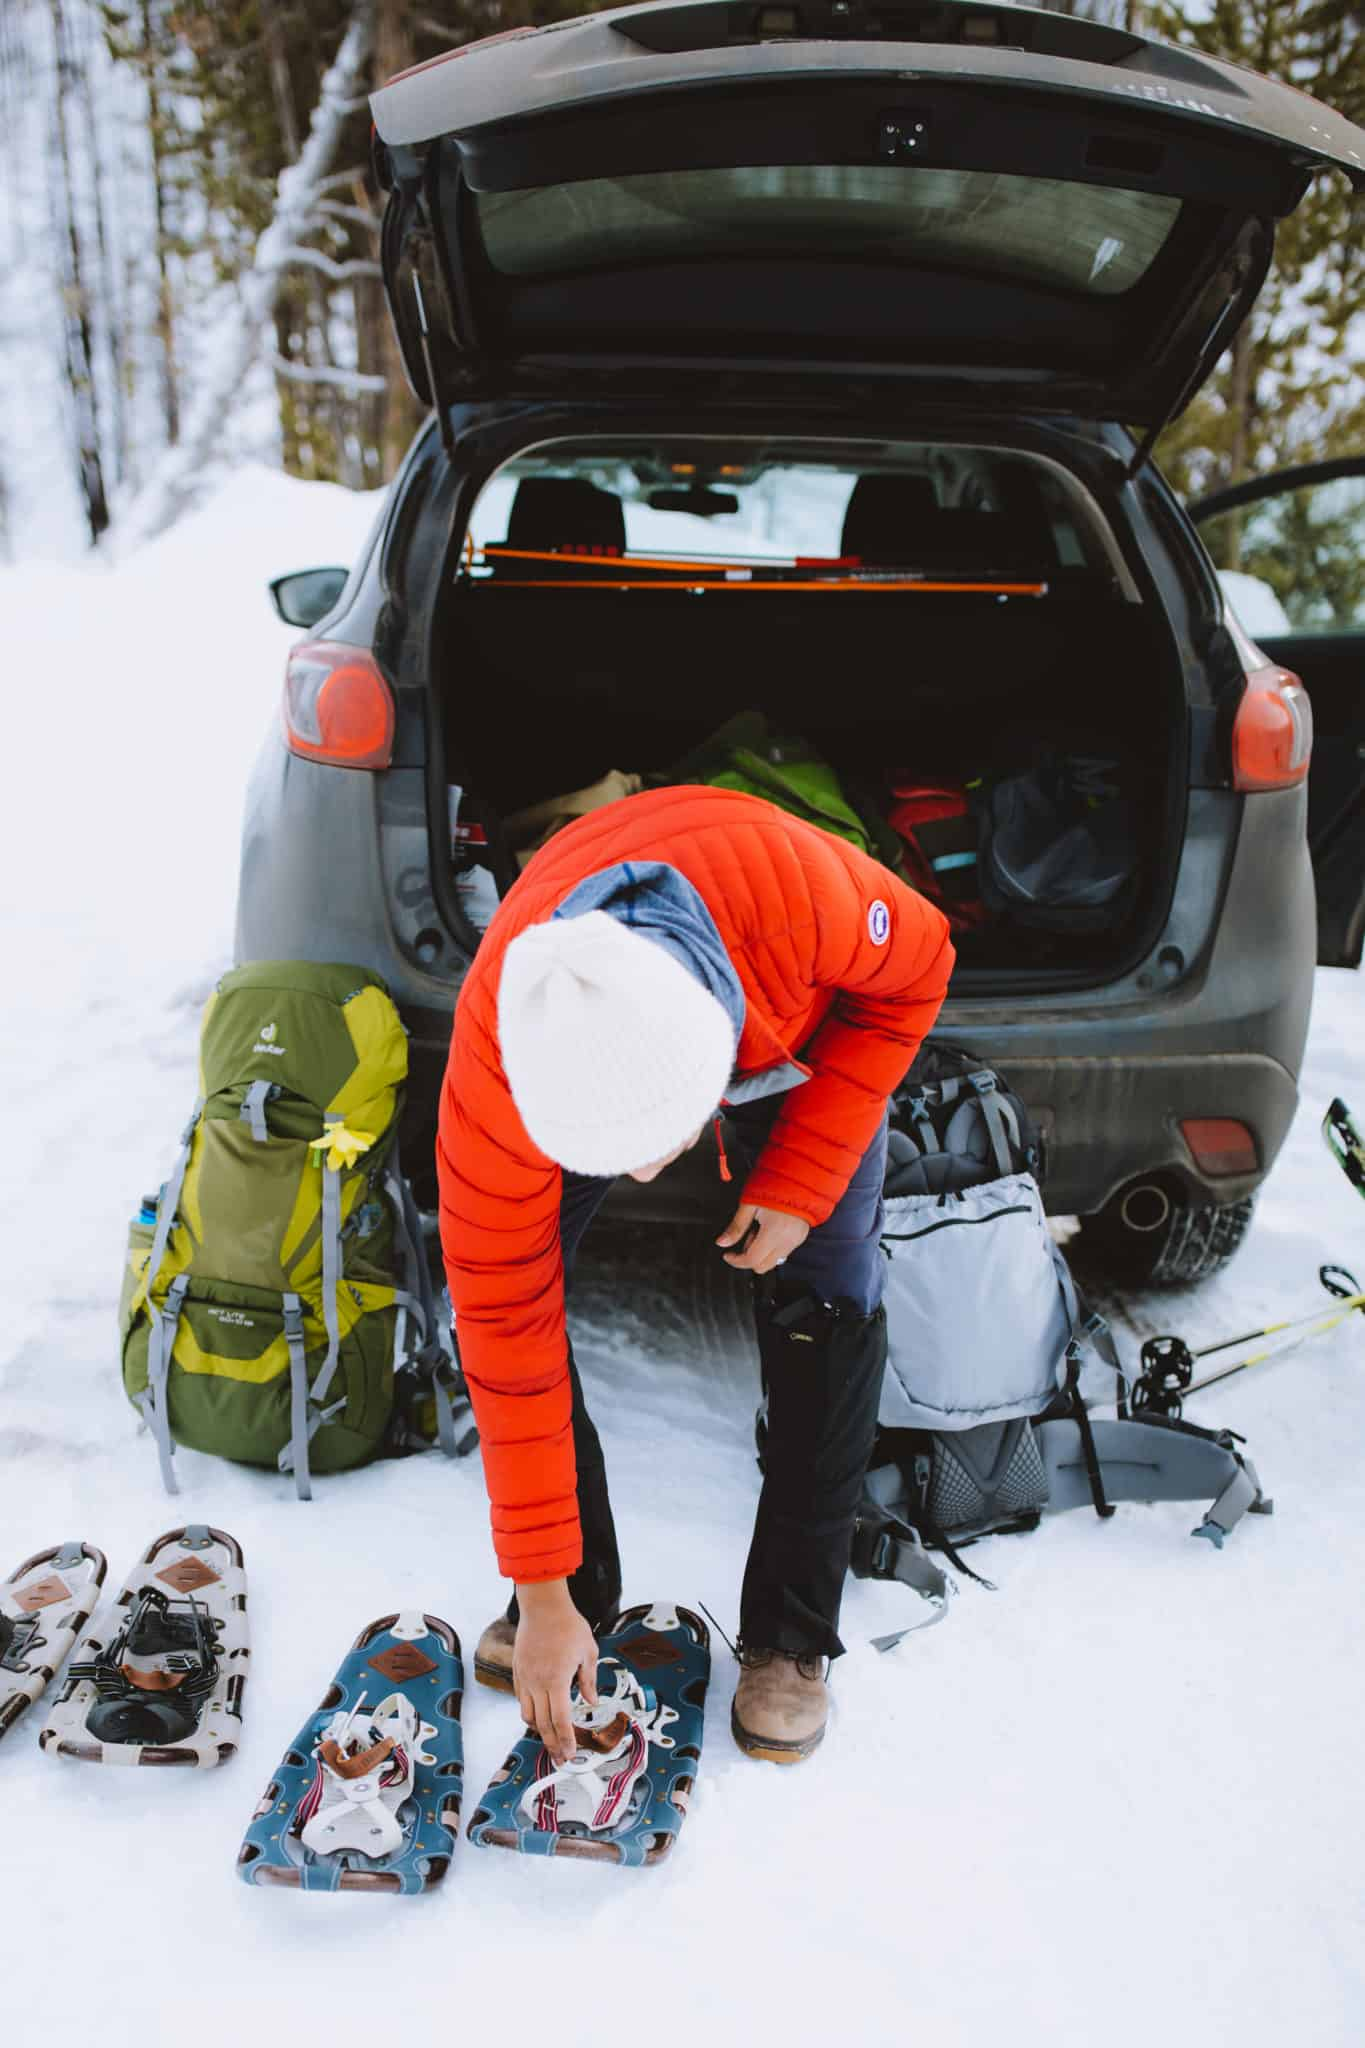 Berty Mandagie preparing snowshoes for Idaho city snowshoe trails